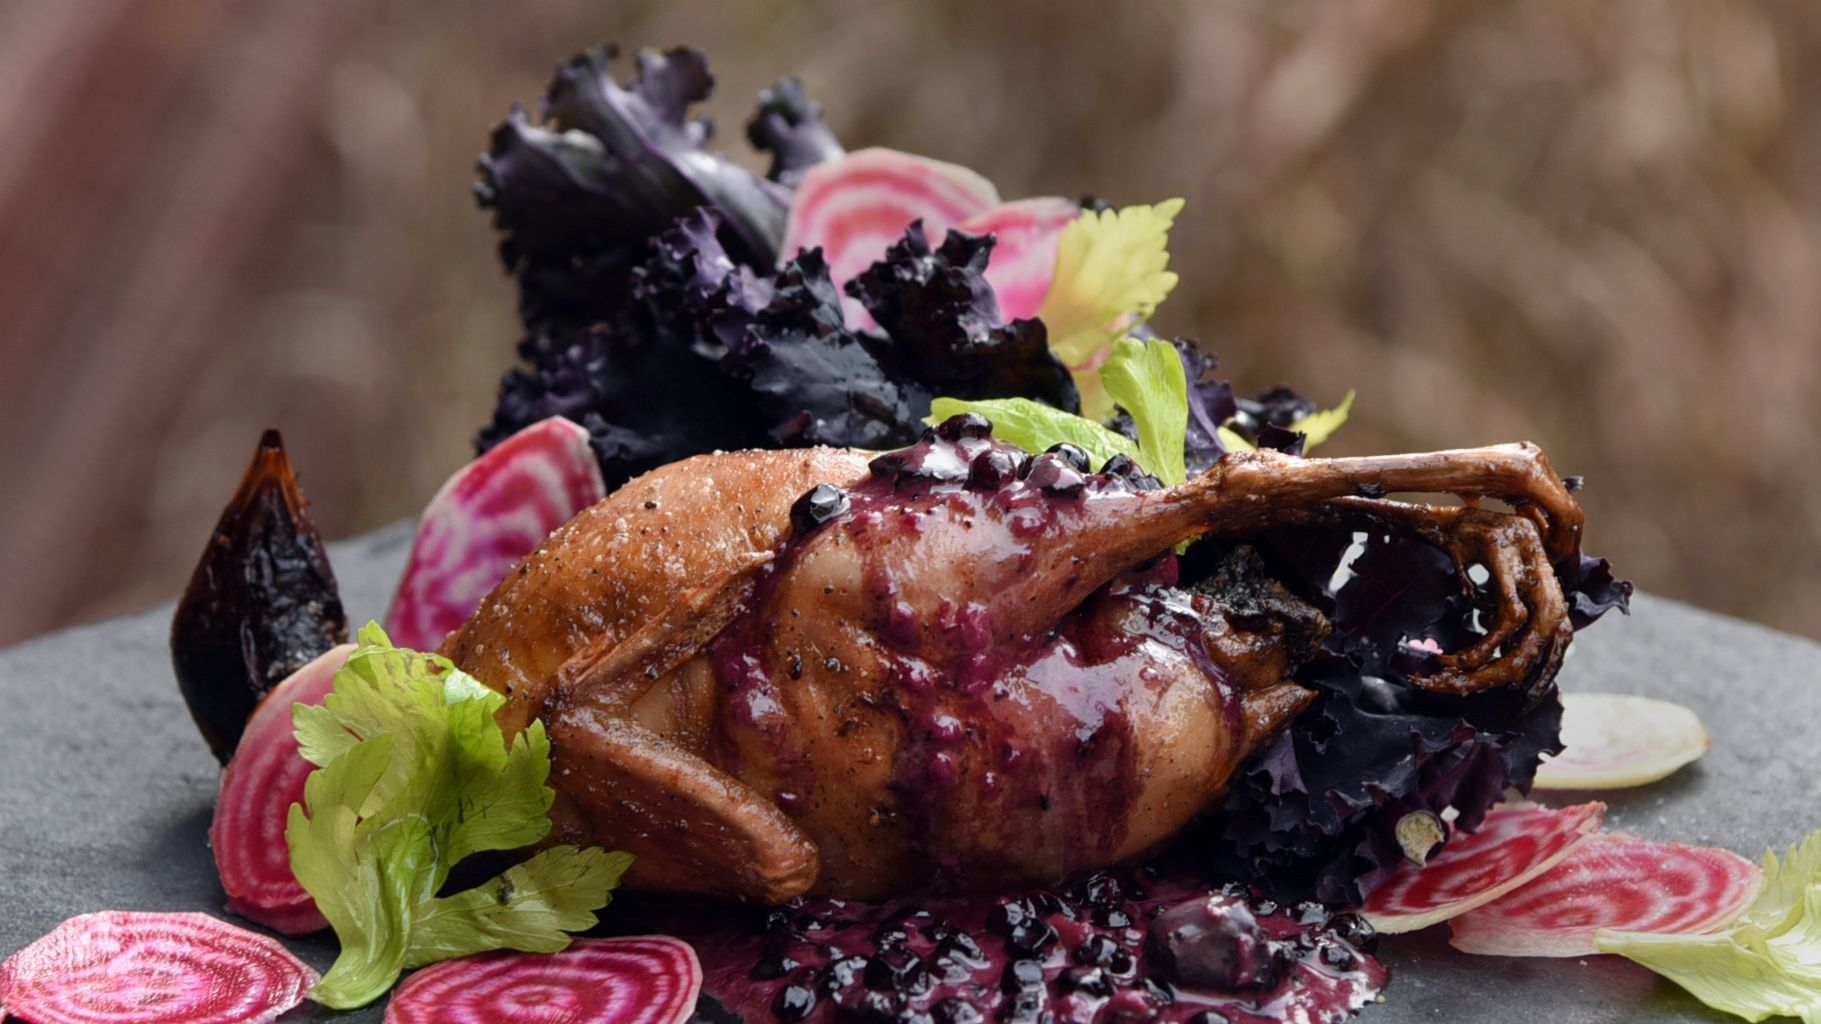 Baltimore, MD--December 6, 2017--Ben Lefenfeld, chef/owner of LaCuchara, prepared this quail with hu